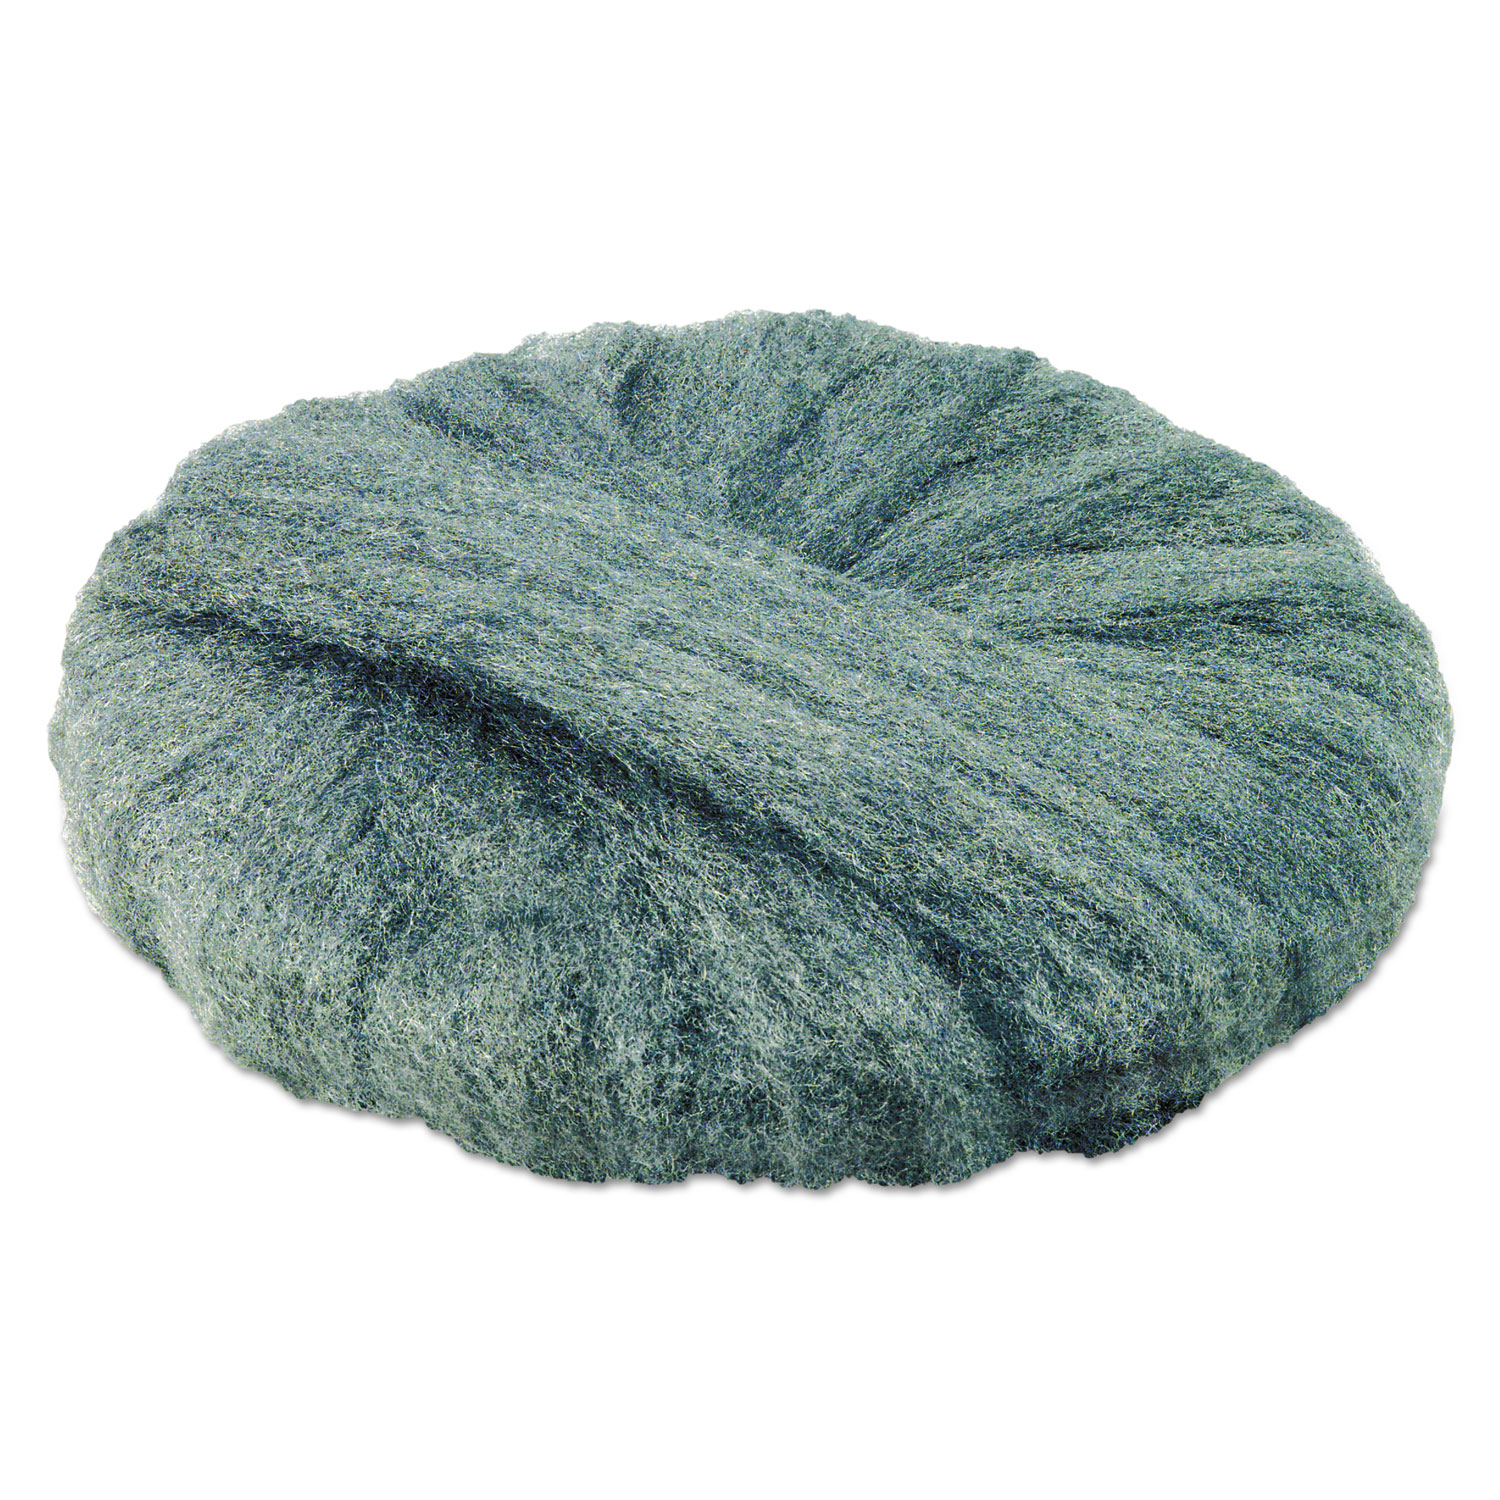 Radial Steel Wool Pads By Gmt Gma120200 Ontimesupplies Com